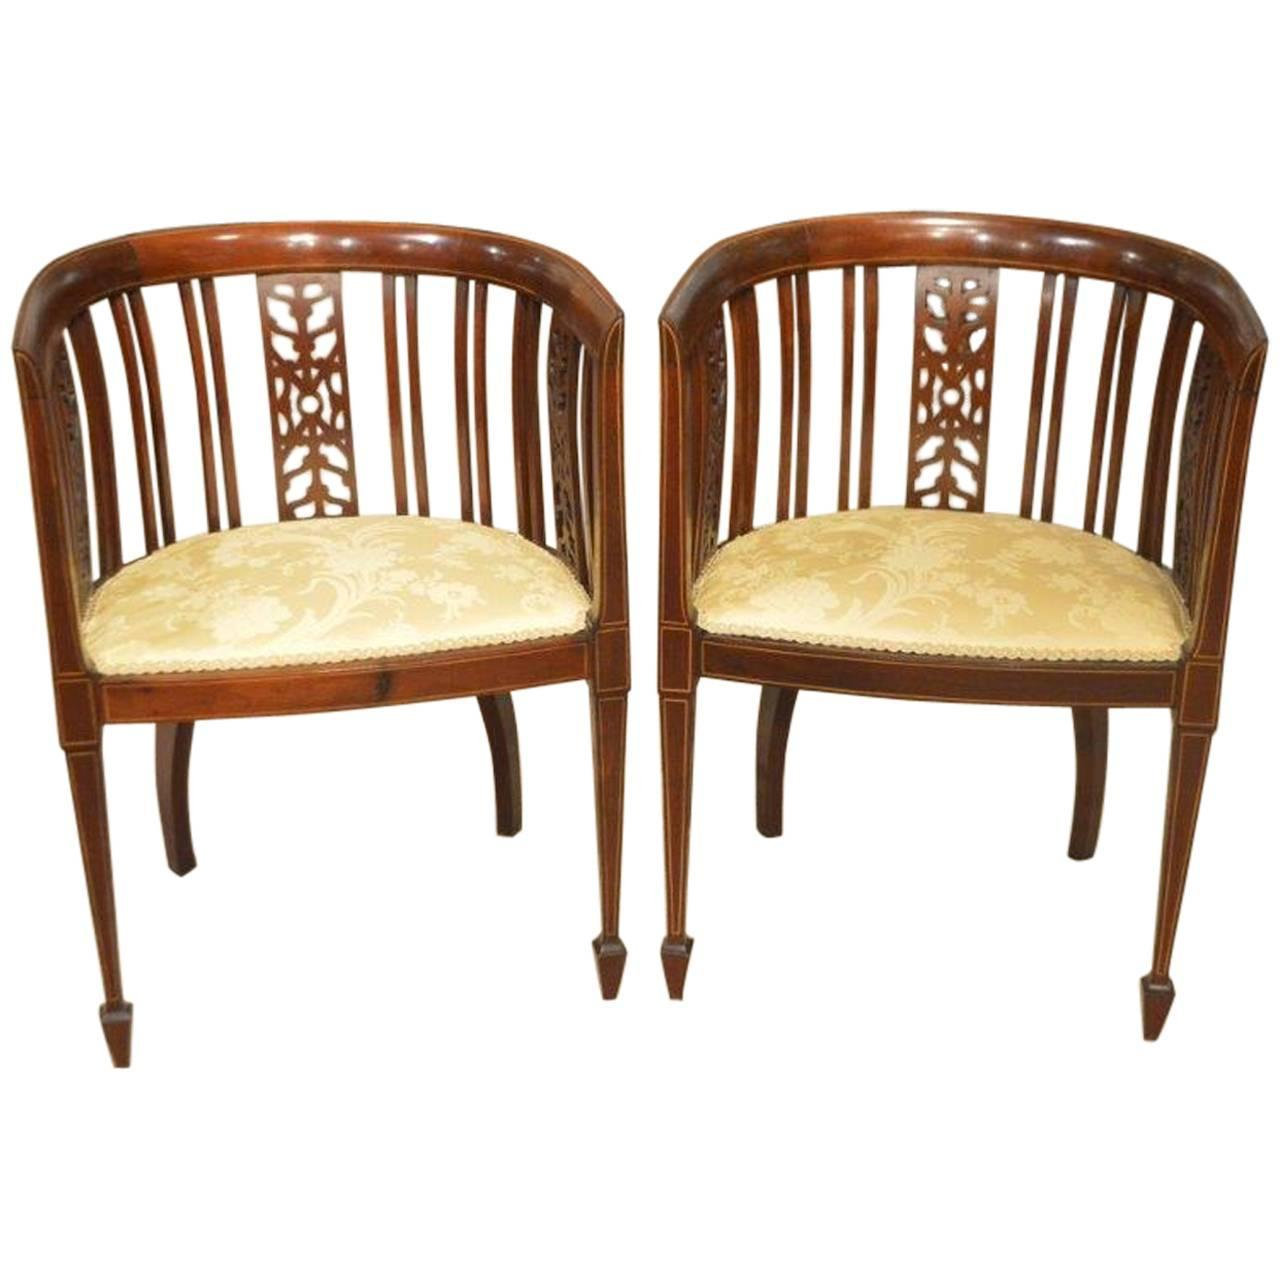 Pair Of Mahogany Inlaid Edwardian Period Antique Bedroom Chairs At 1stdibs